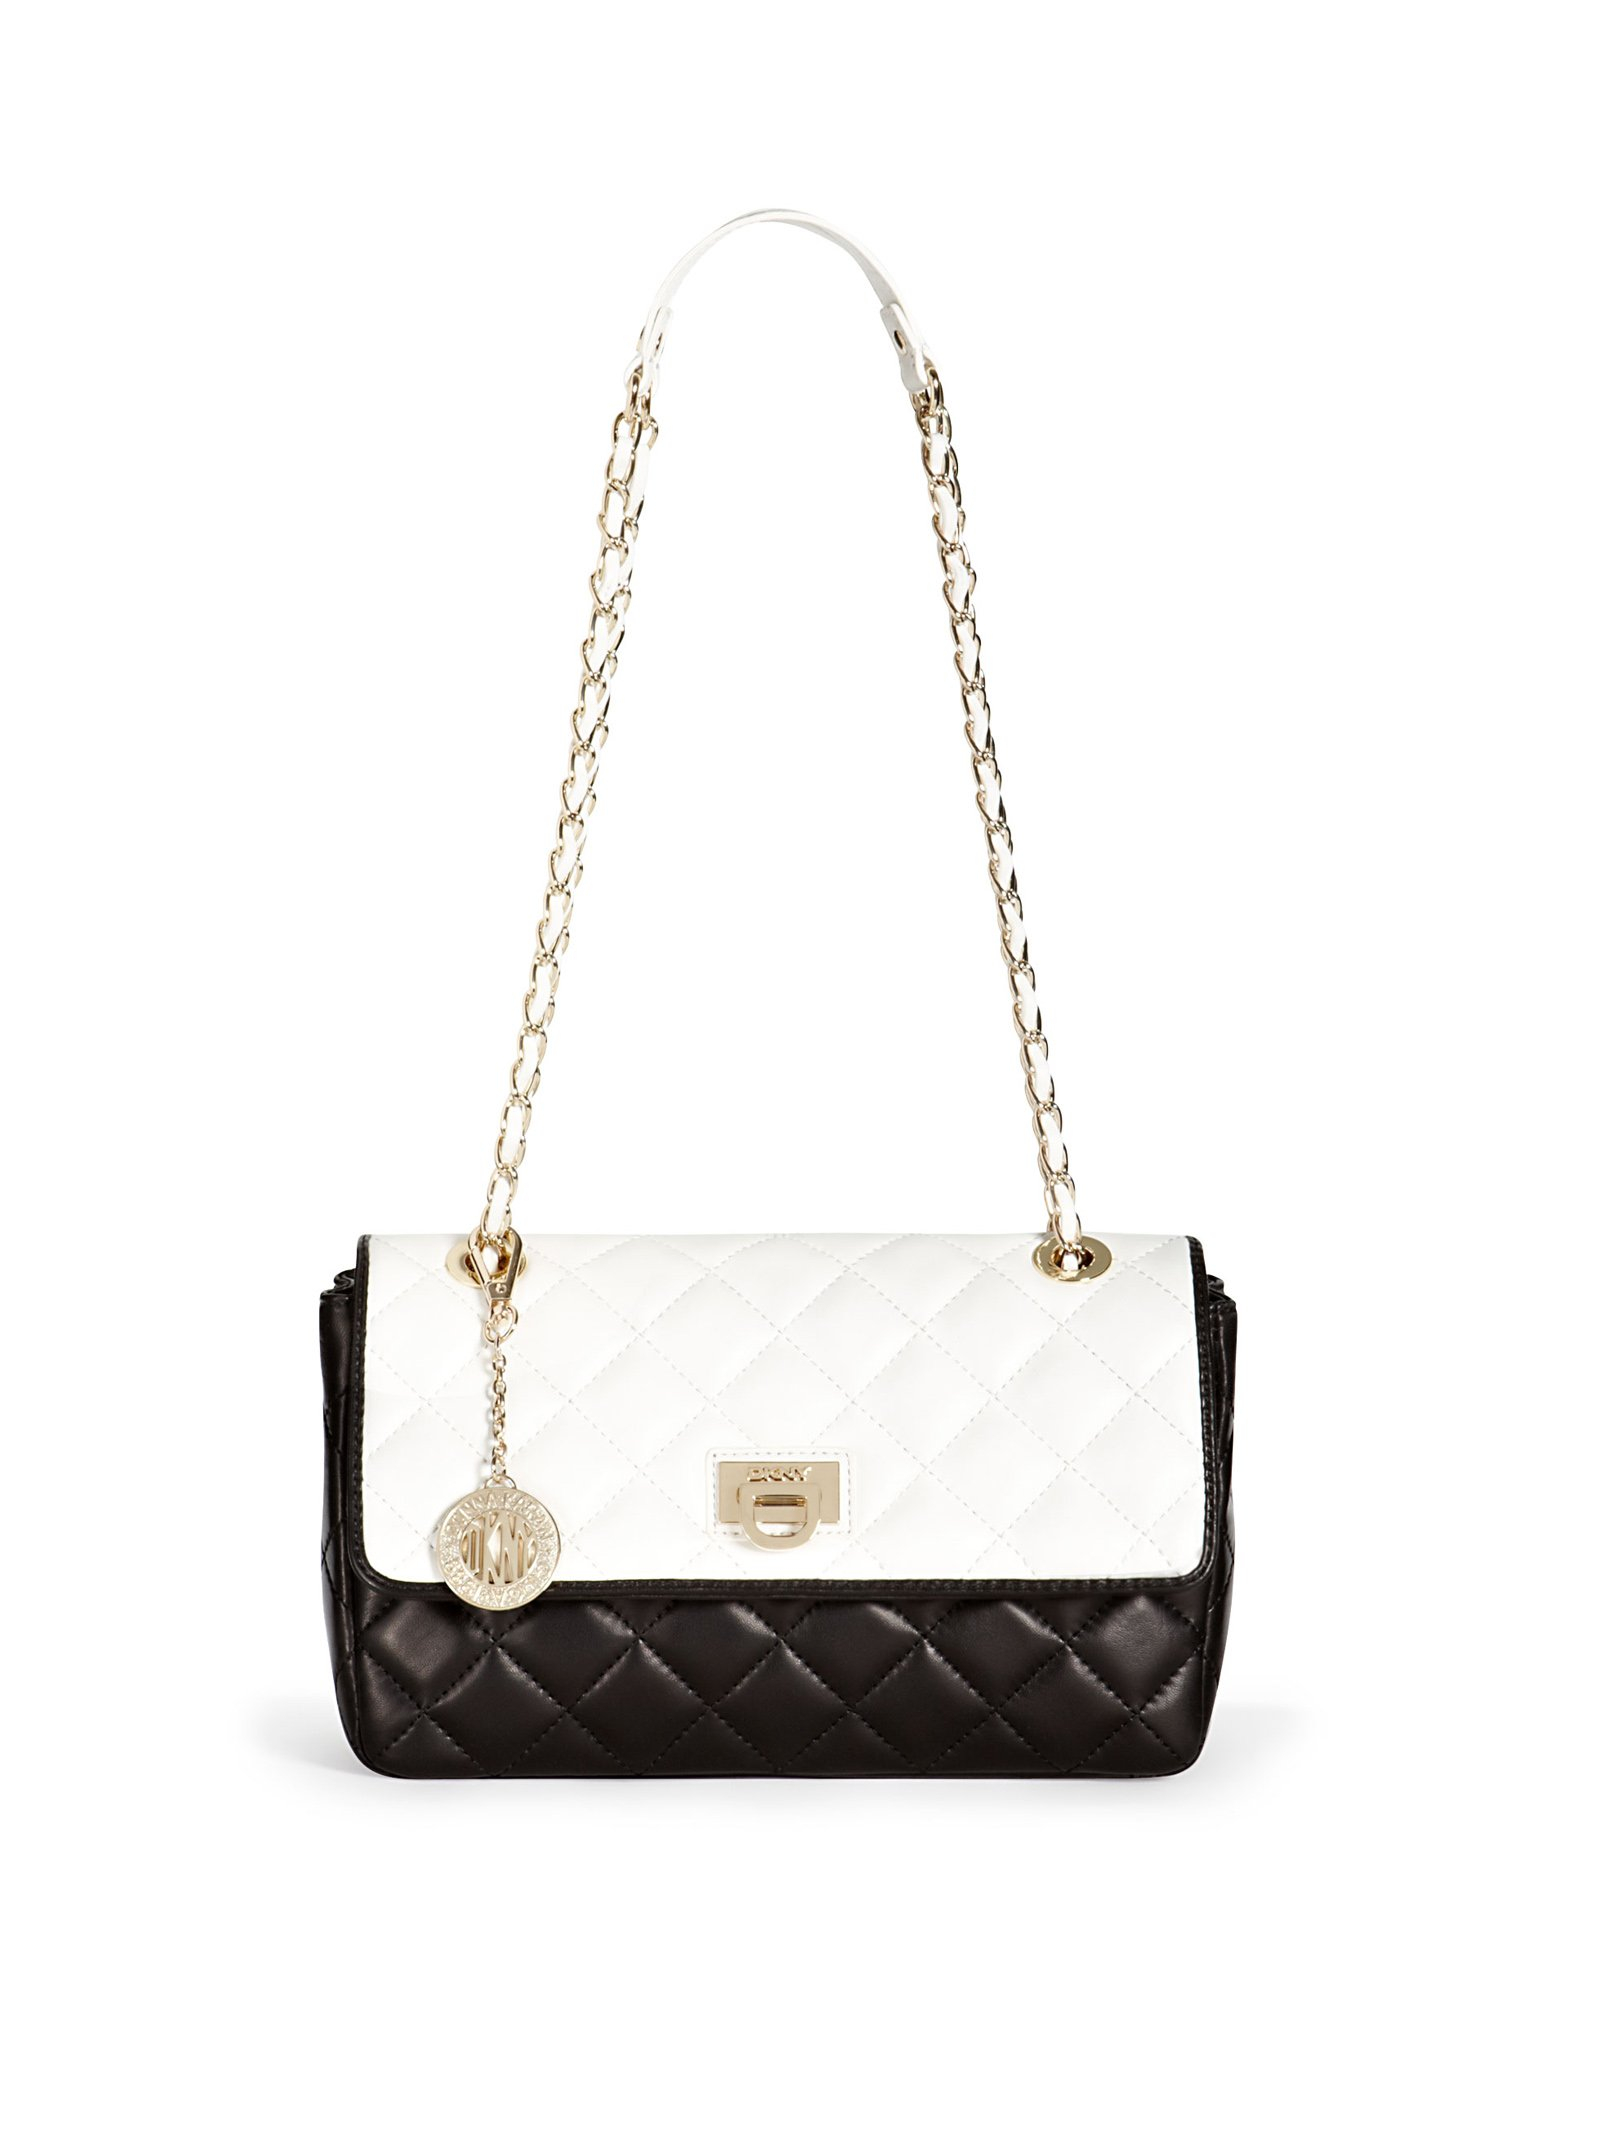 Dkny Quilted Leather Shoulder Bag 80